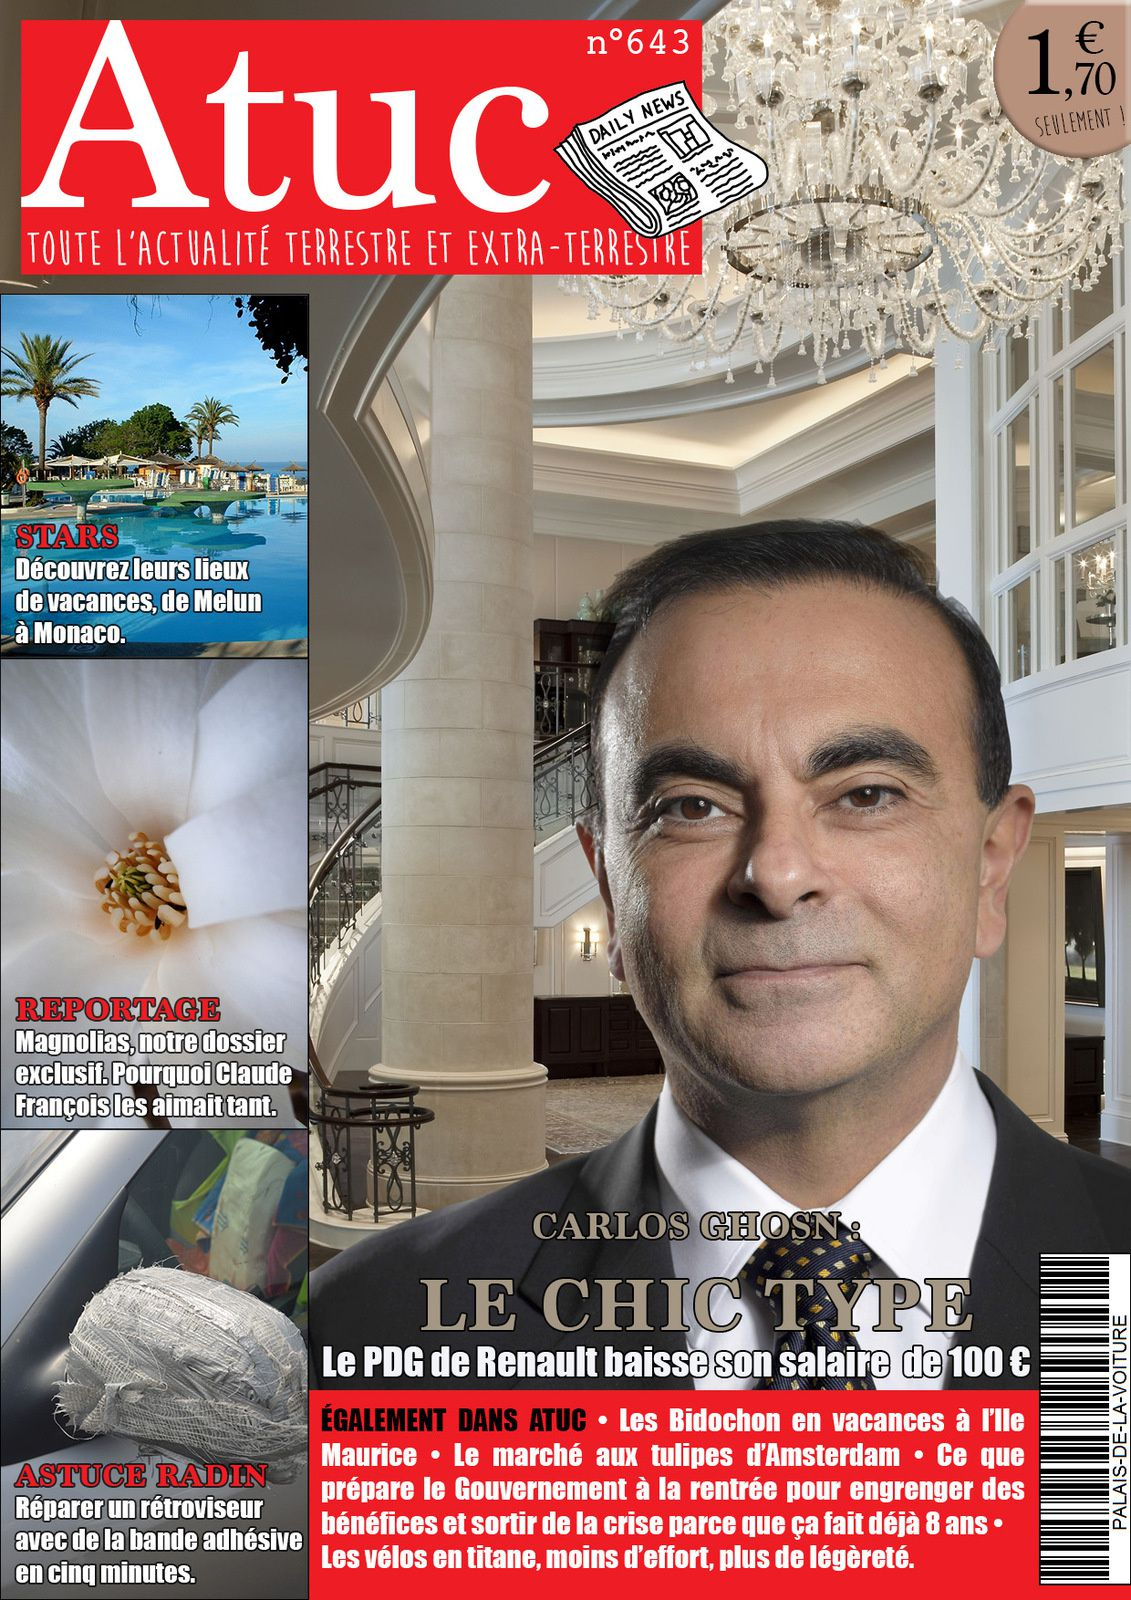 Atuc n°643 • Merci Monsieur Ghosn !